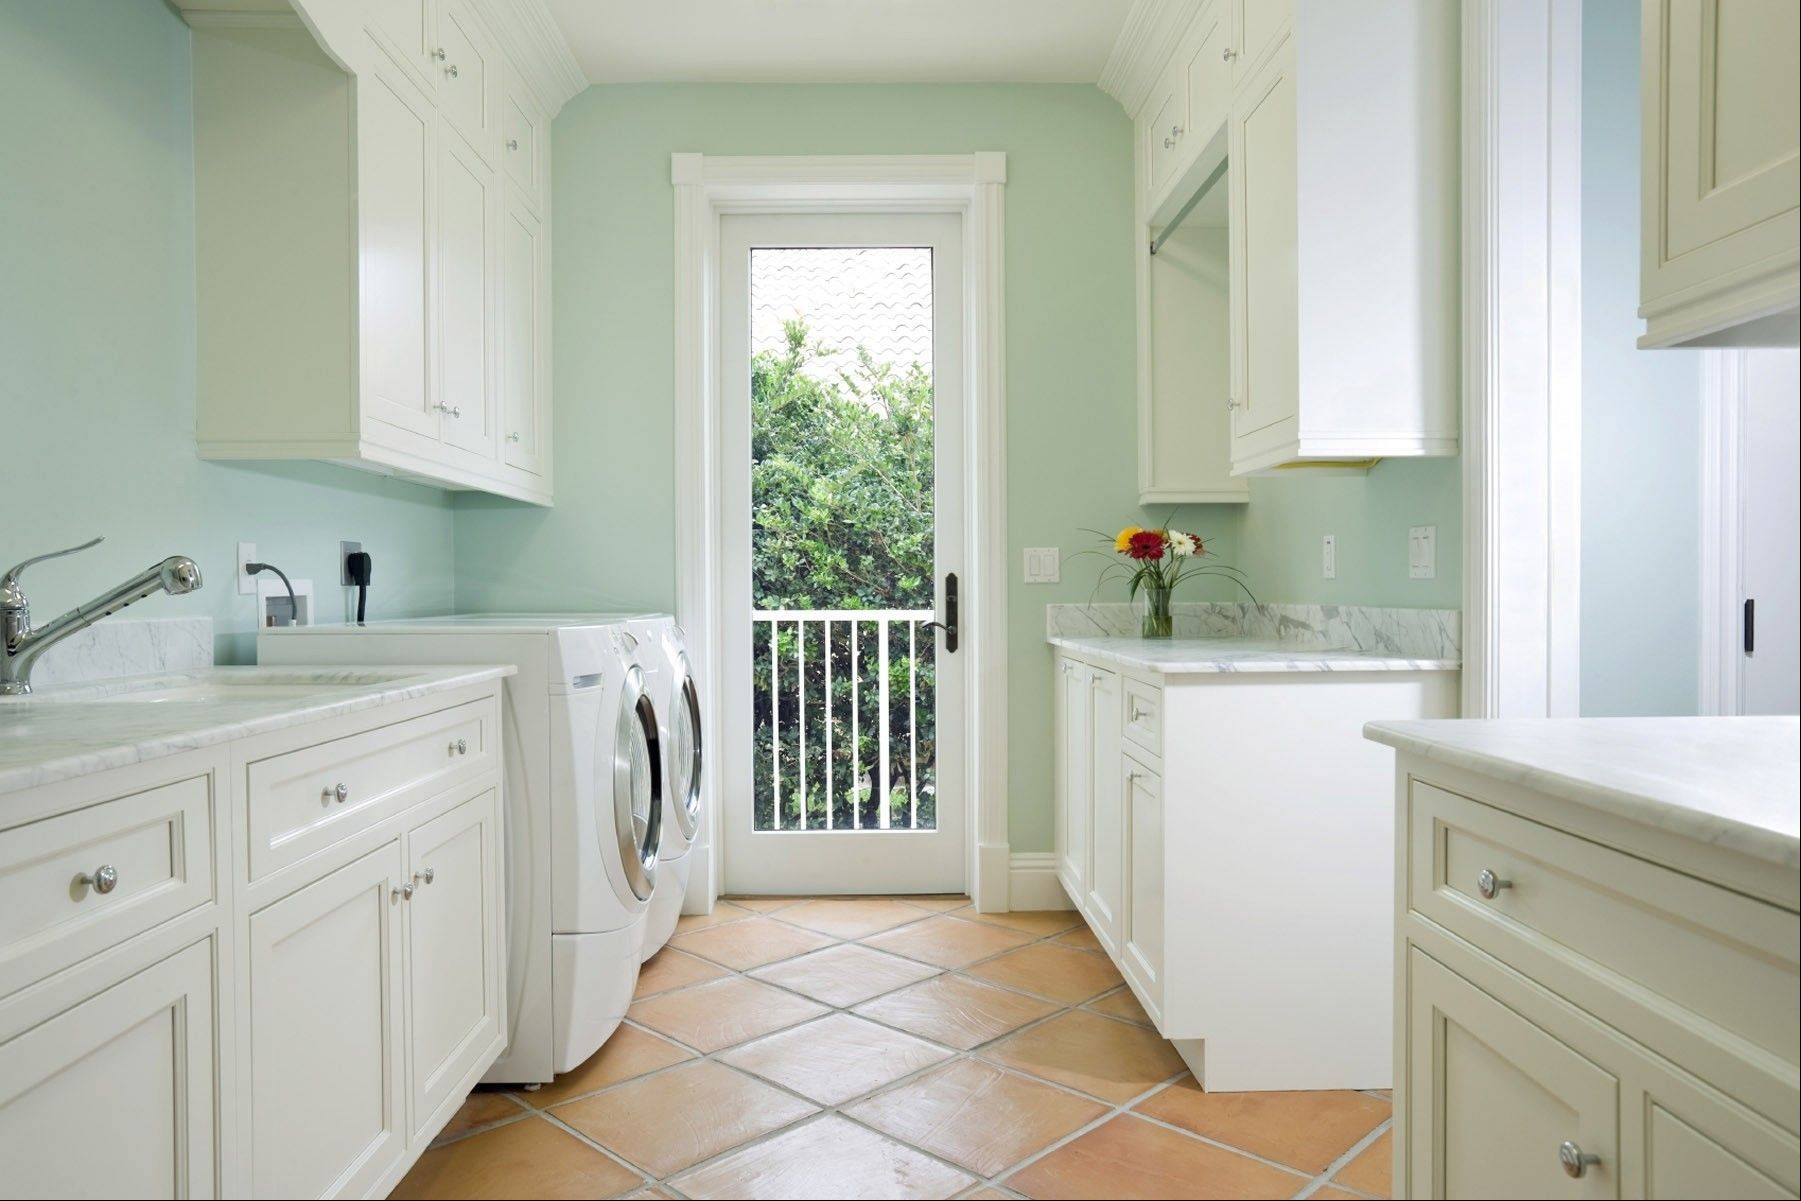 A sink to wash delicate items, or even a small pet, is a nice addition to your laundry room.